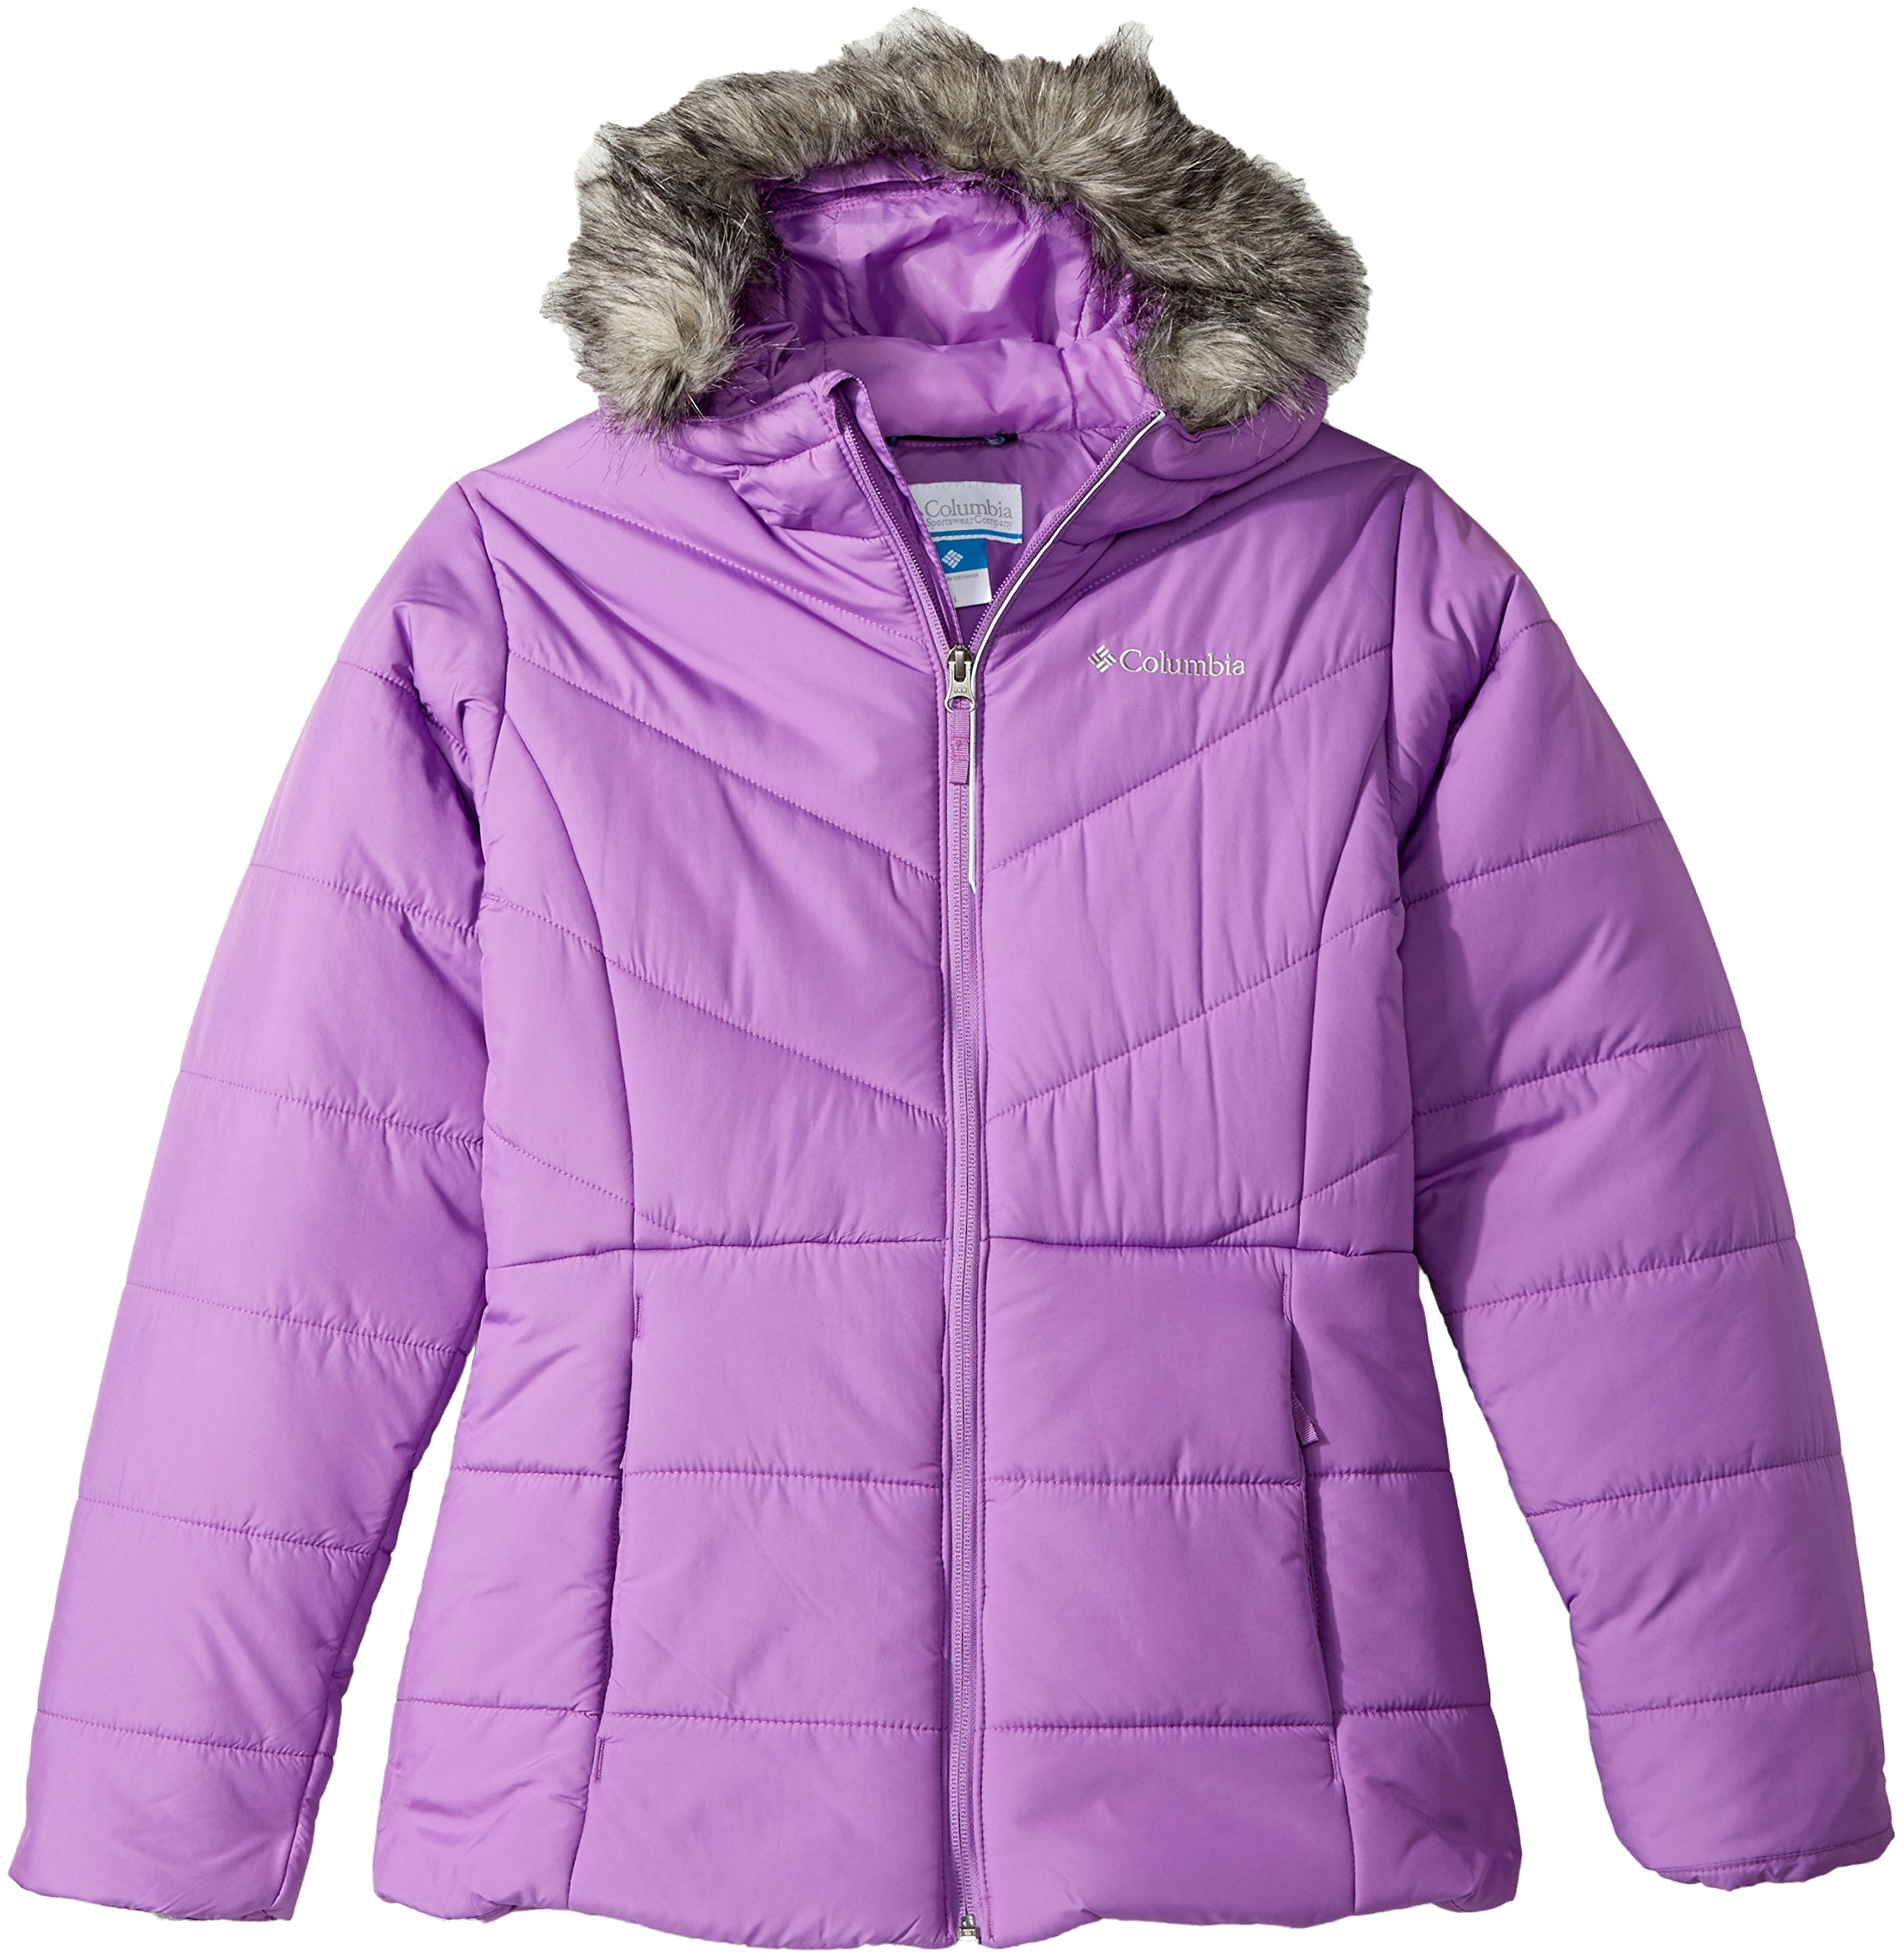 Columbia Big Girls' Katelyn Crest Jacket, Crown Jewel, Medium